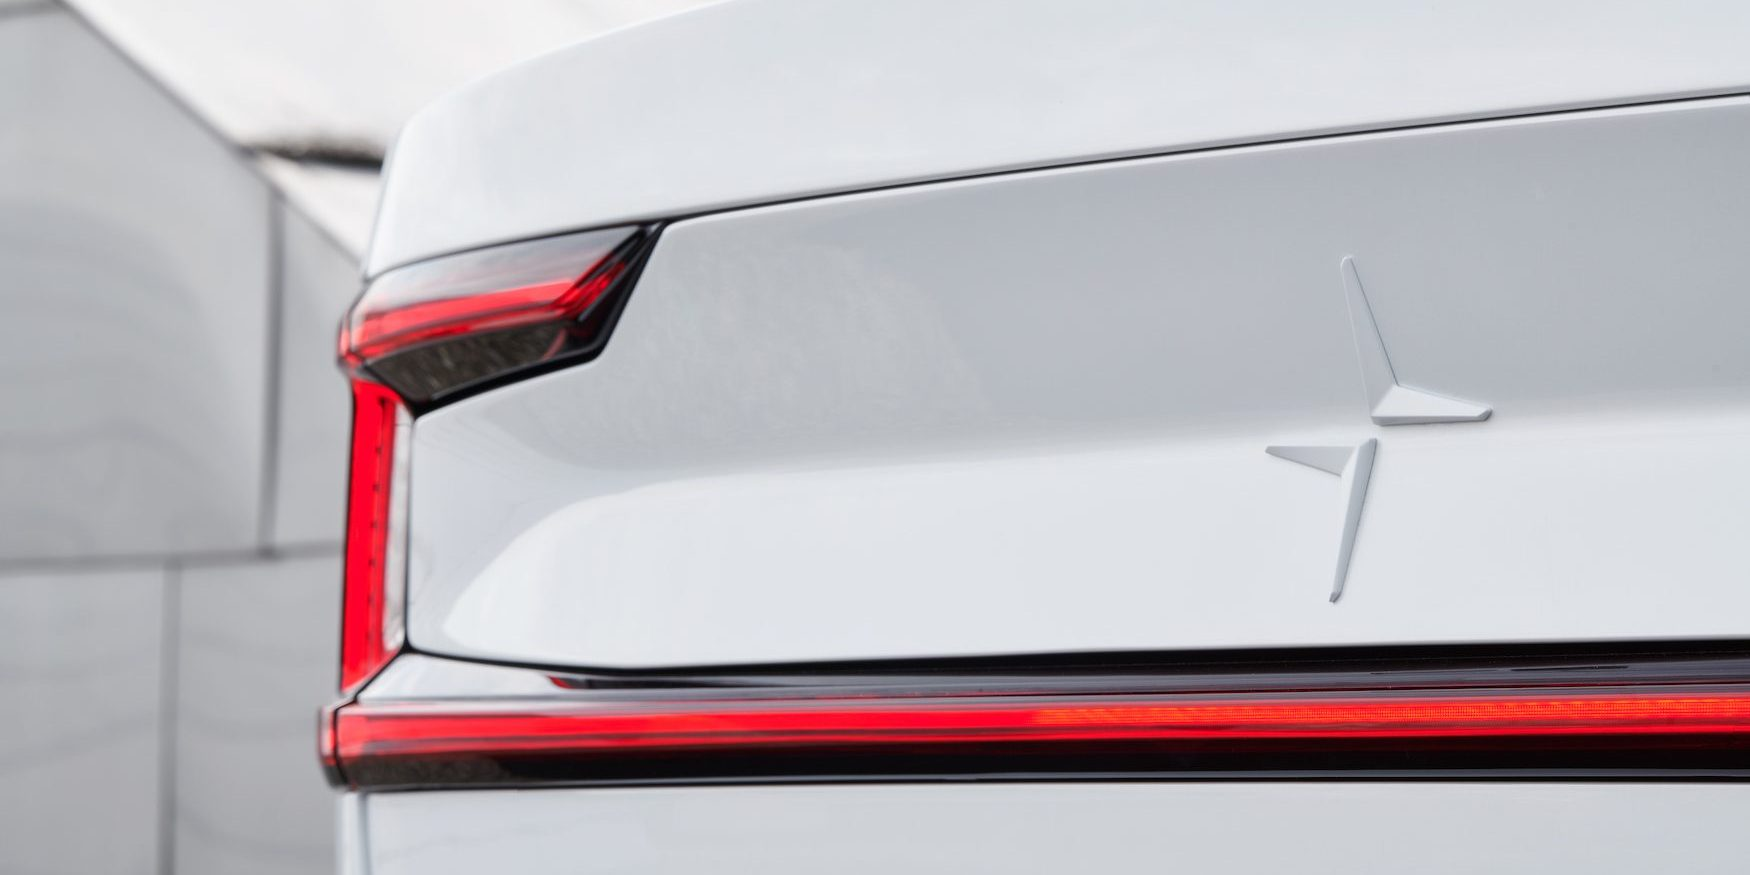 Volvo teases Polestar 2 electric car with new picture ahead of unveiling